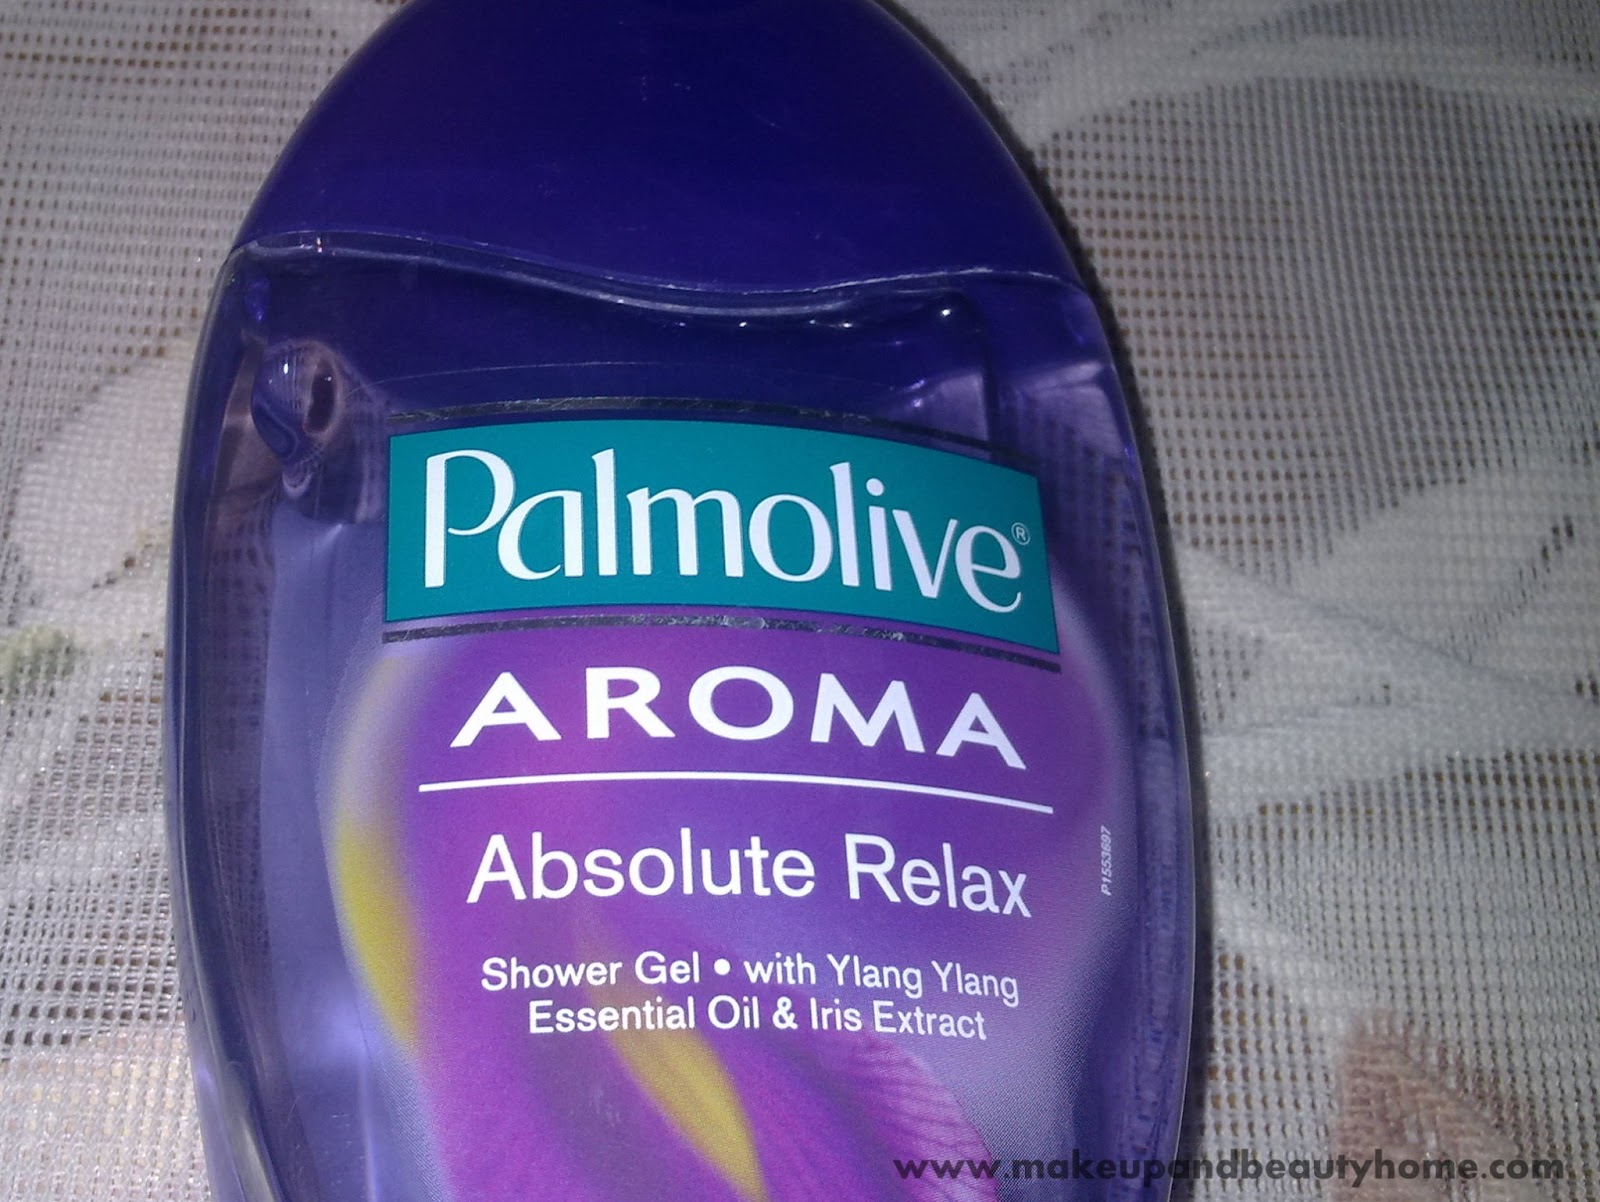 Palmolive Aroma Therapy Absolute Relax Shower Gel Review Mabh Blog